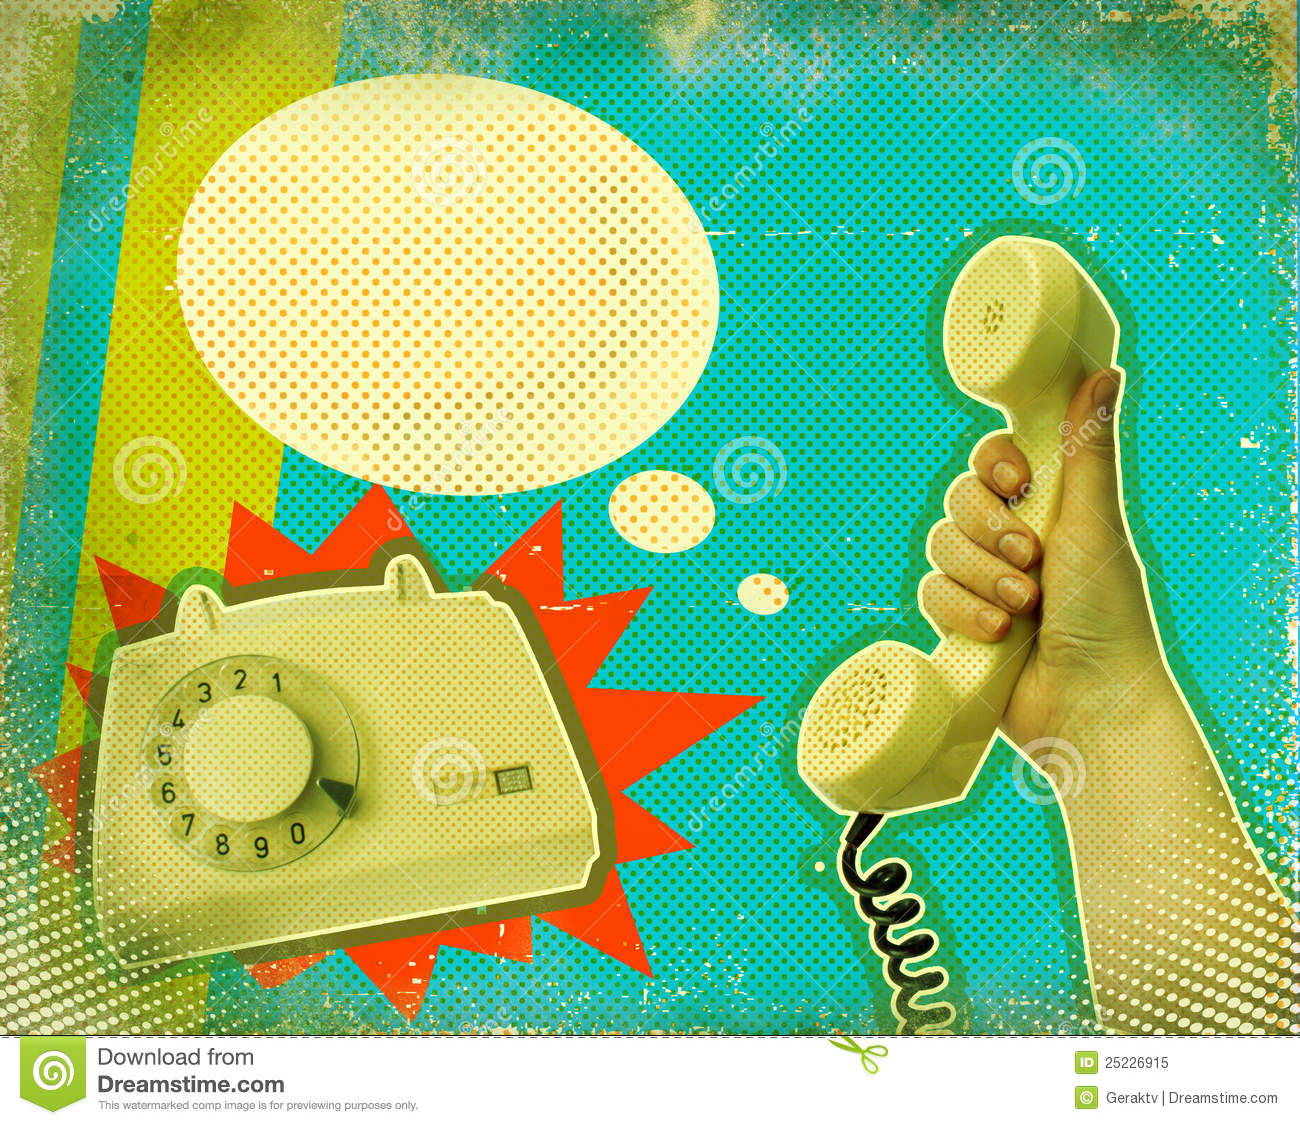 essay on telephone communication Gone are the days when mobile phones were considered as luxury thing to have with the growing competition in mobile manufacturers has lowered the prices of mobile phones to that extent that nowadays, buying a mobile phone is not a big deal.